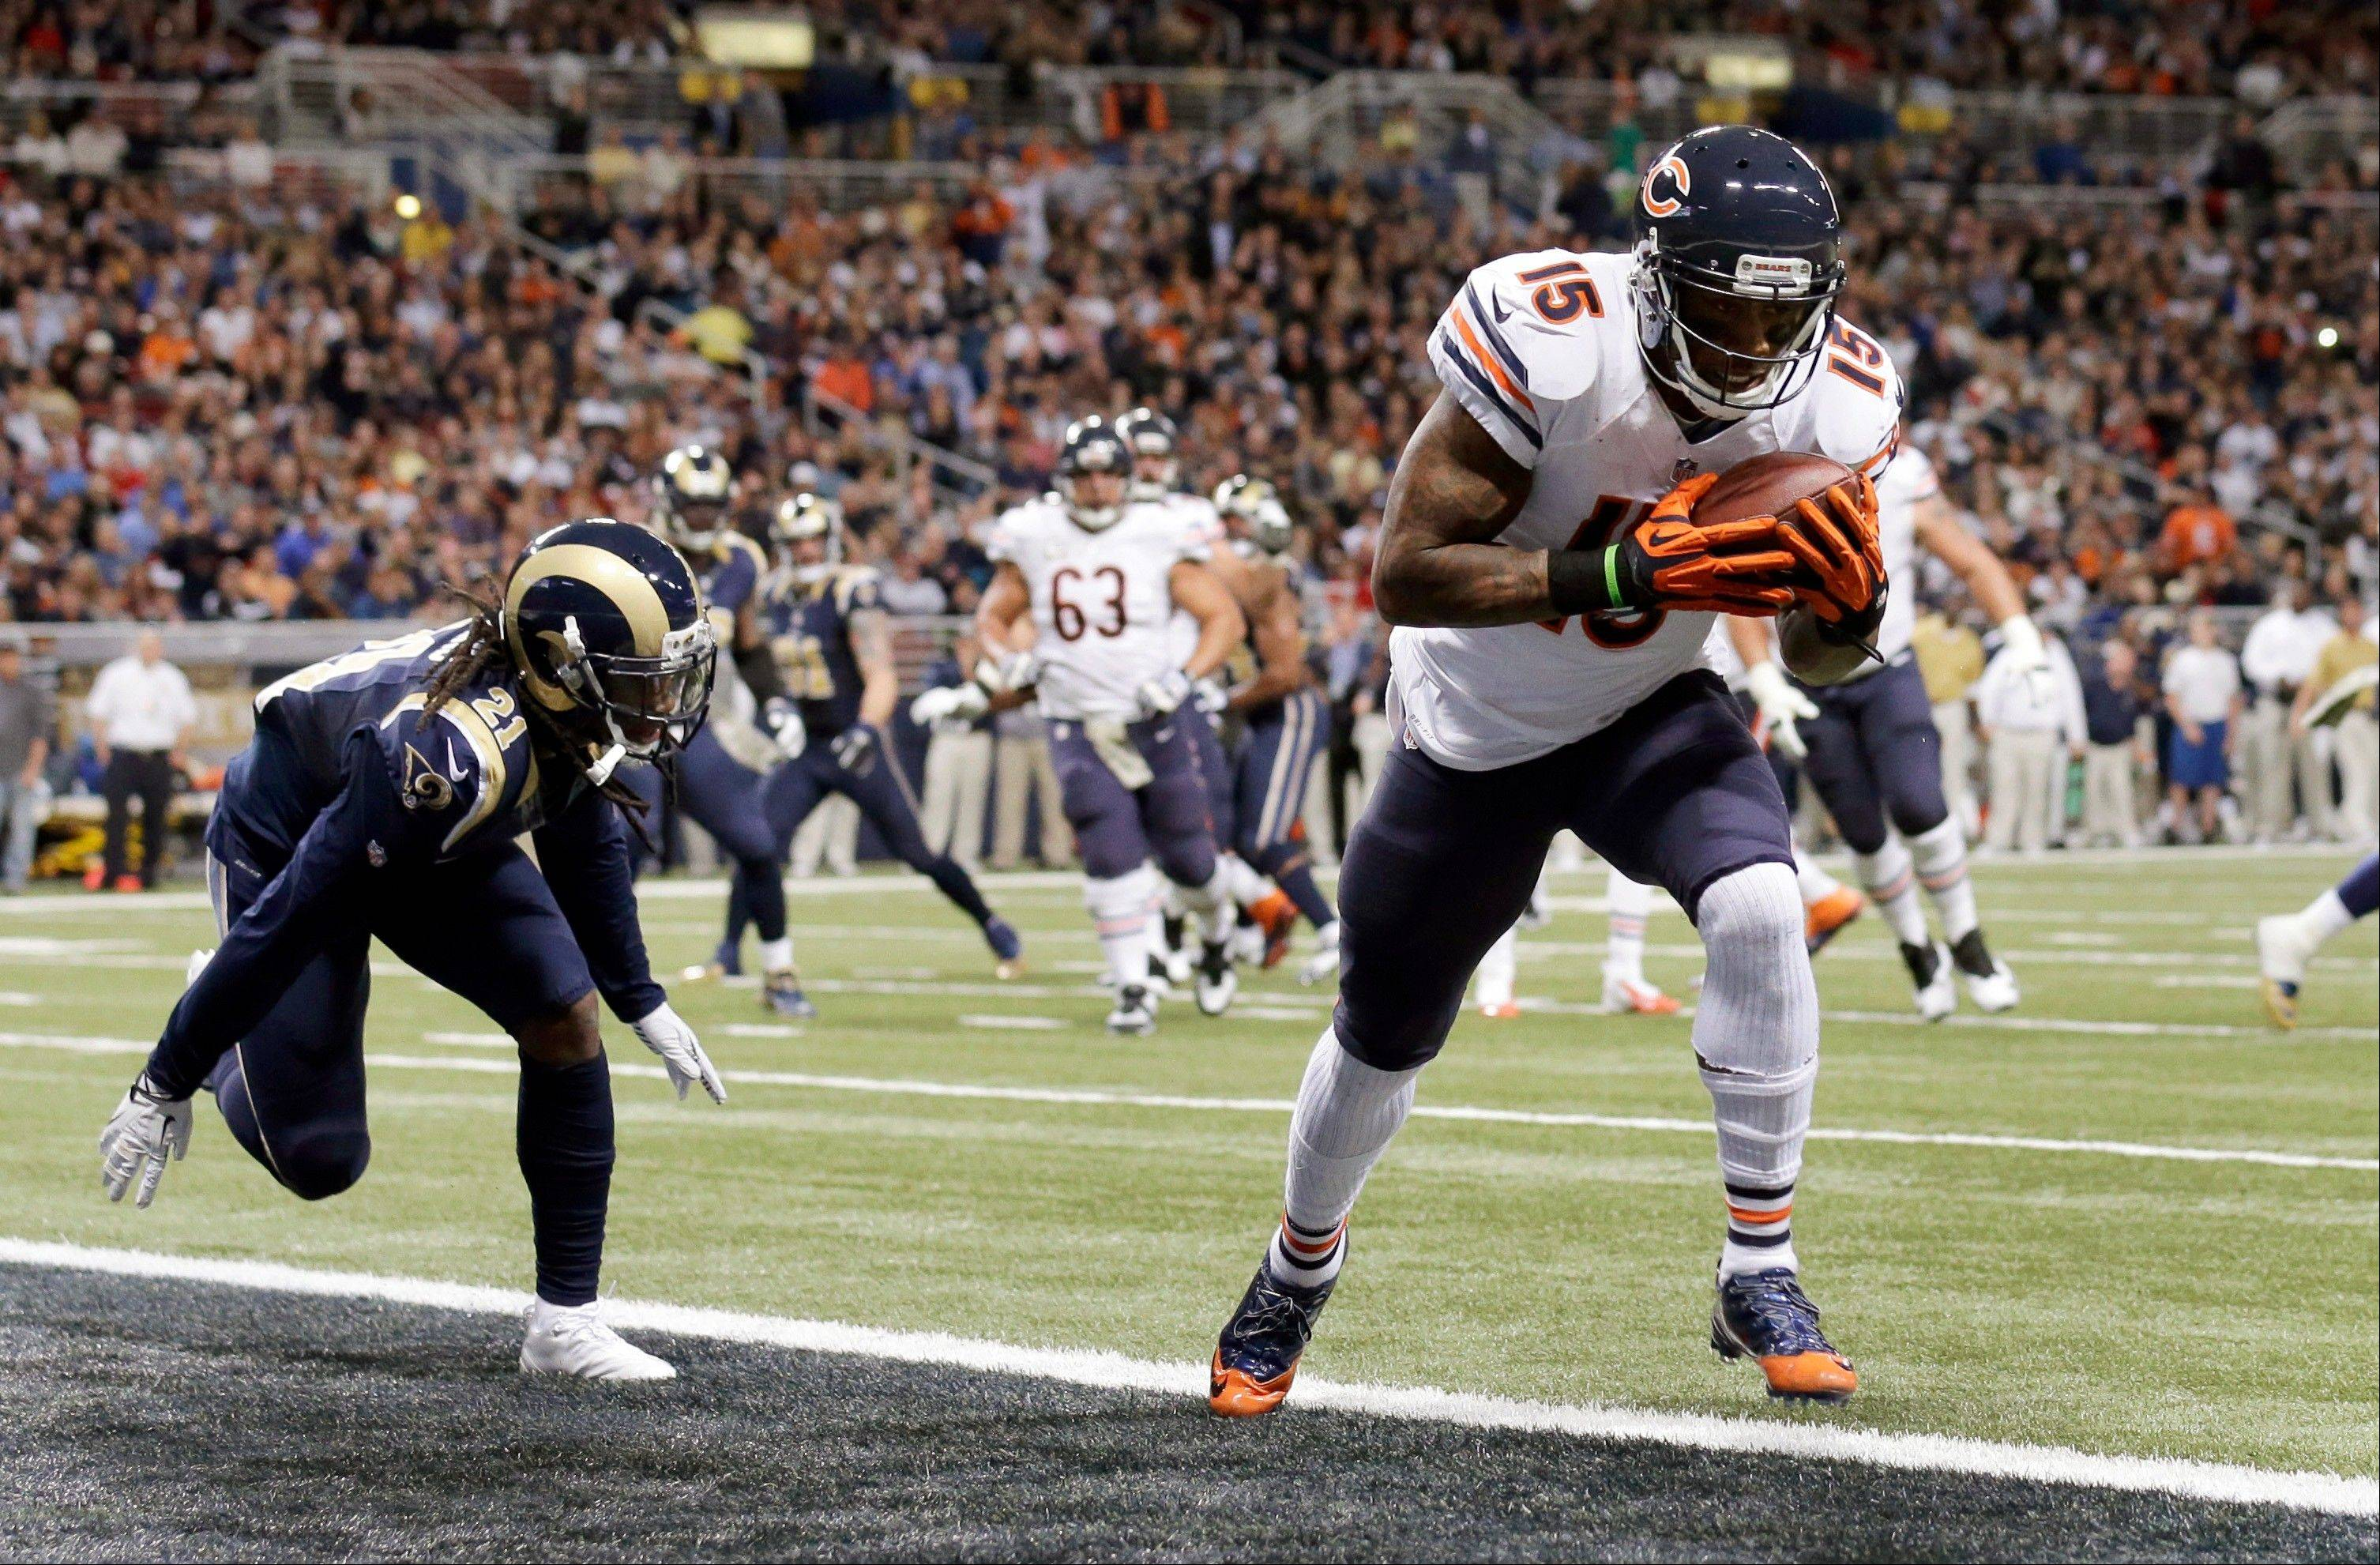 Chicago Bears wide receiver Brandon Marshall, right, catches a 3-yard touchdown pass as St. Louis Rams cornerback Janoris Jenkins defends during the second quarter.